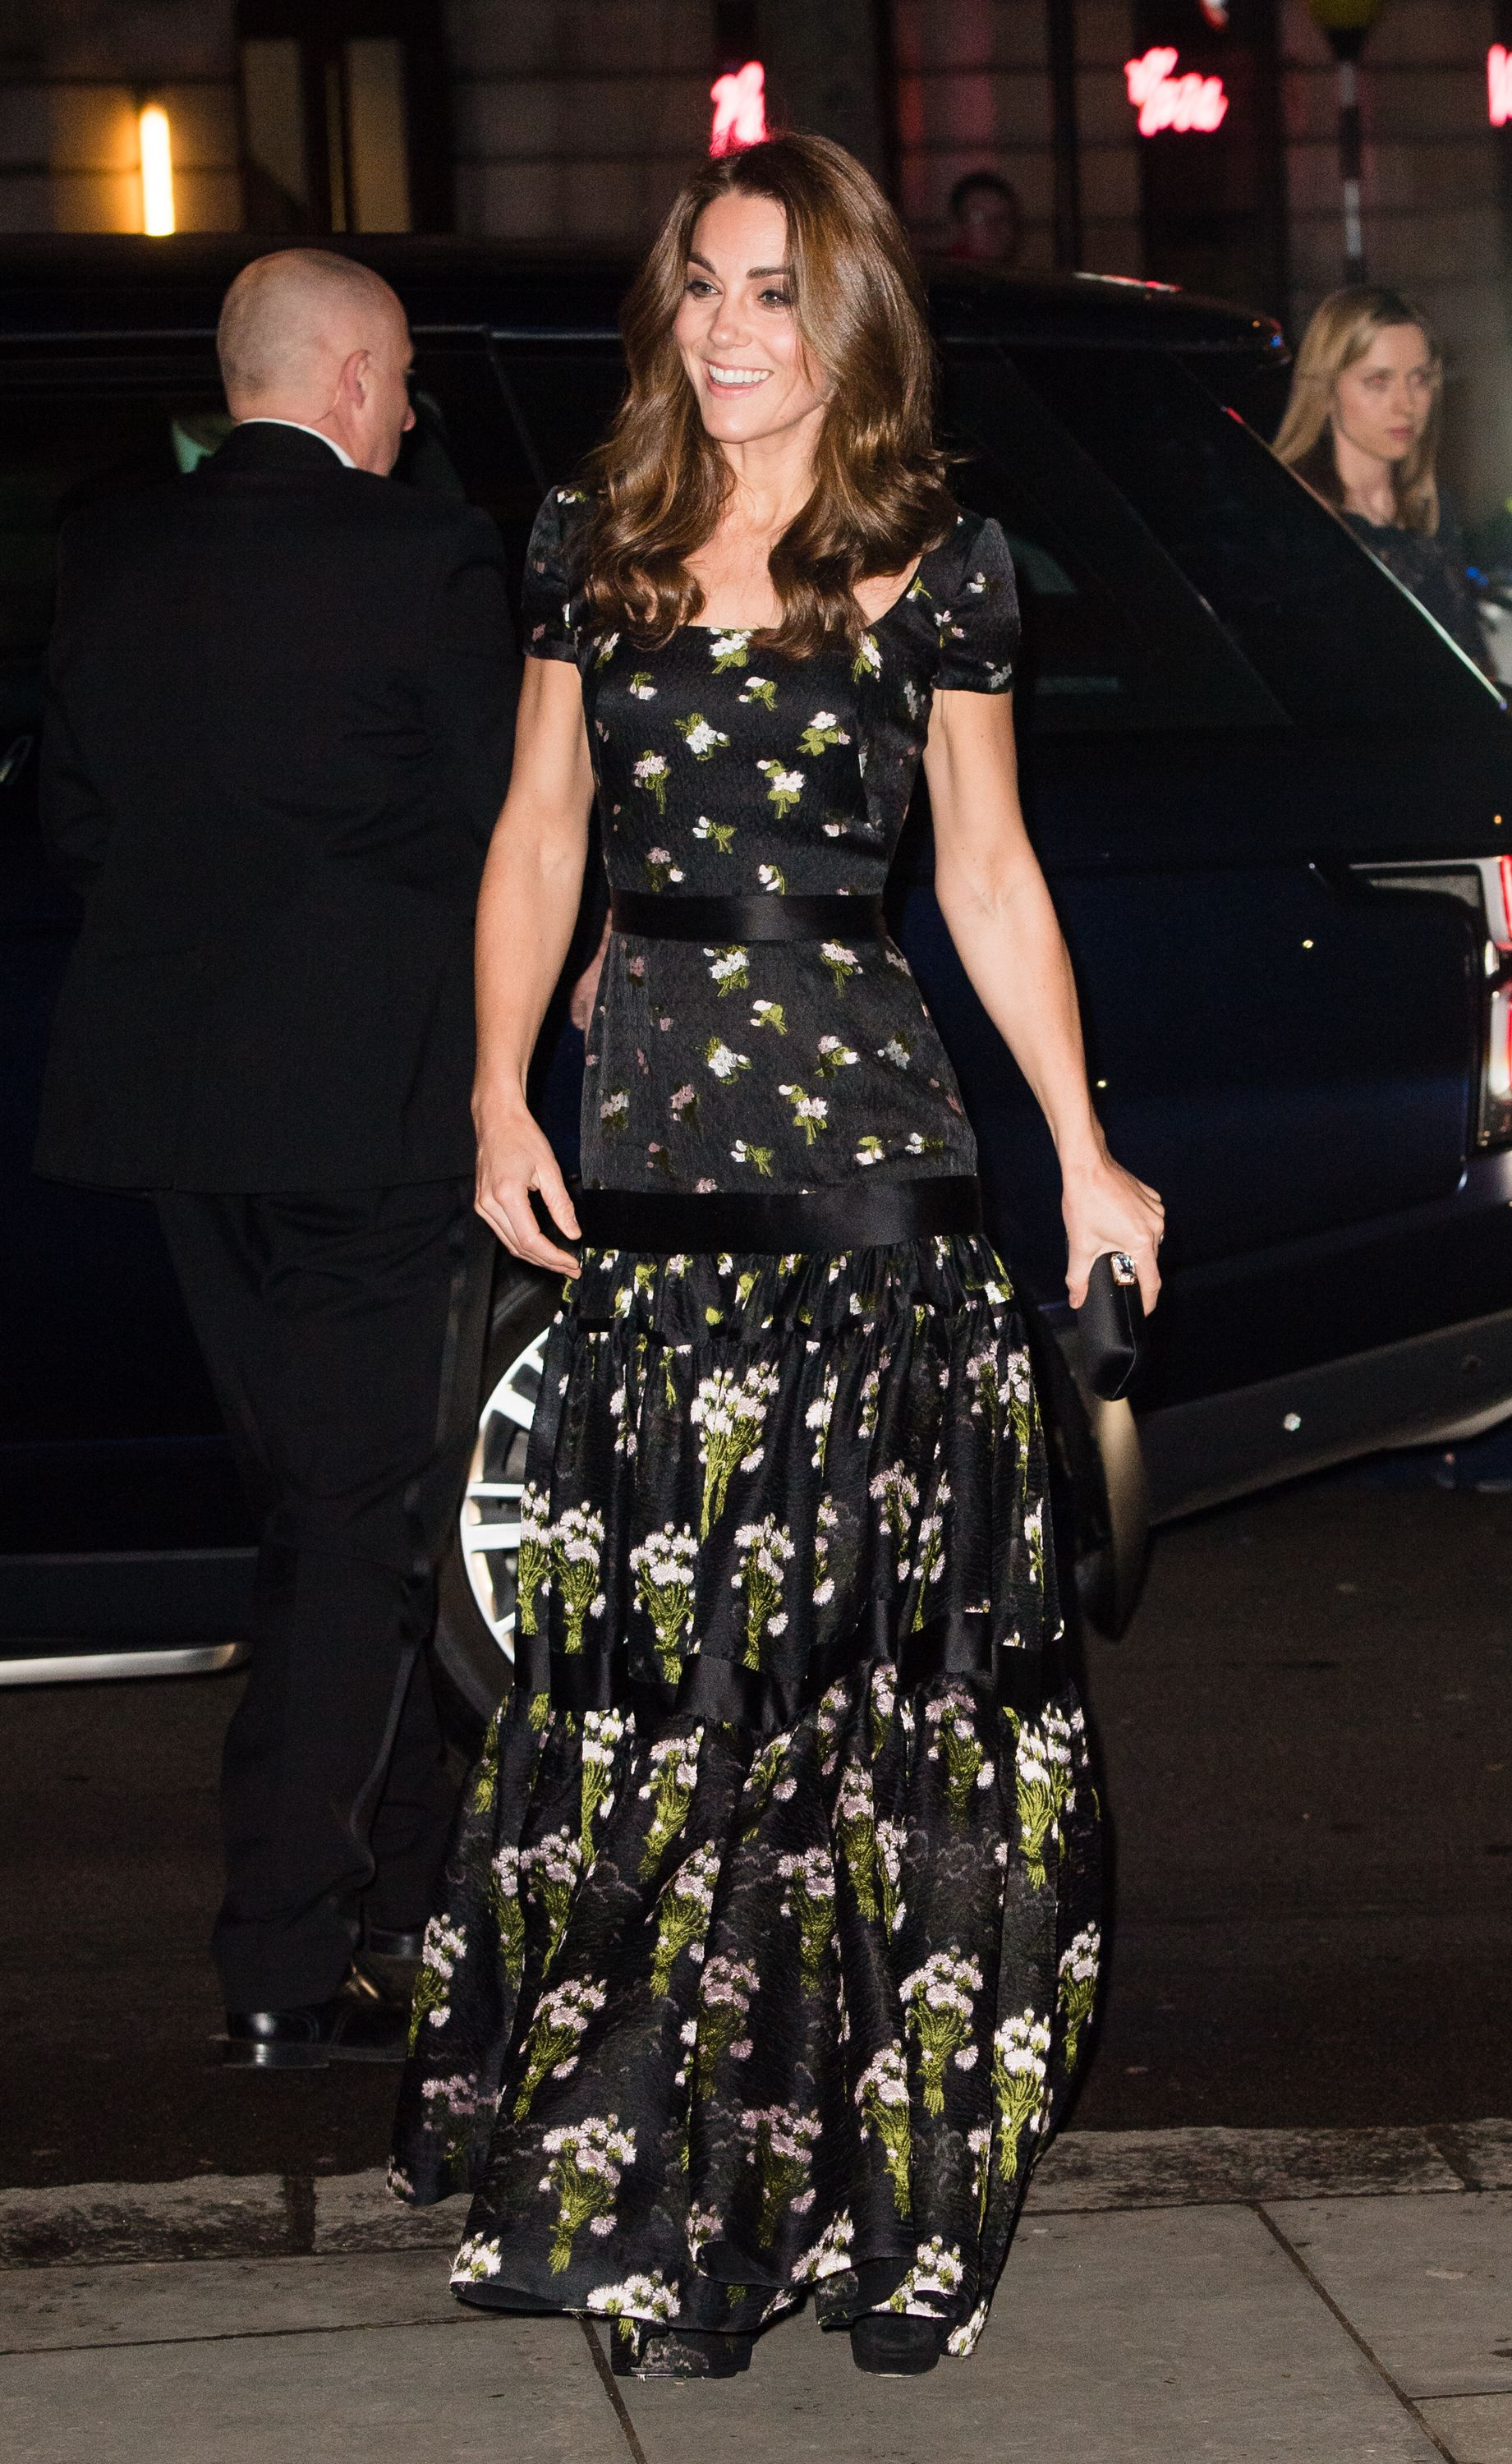 Kate Middleton Rewears a Stunning Alexander McQueen Gown to the National Portrait Gallery Gala